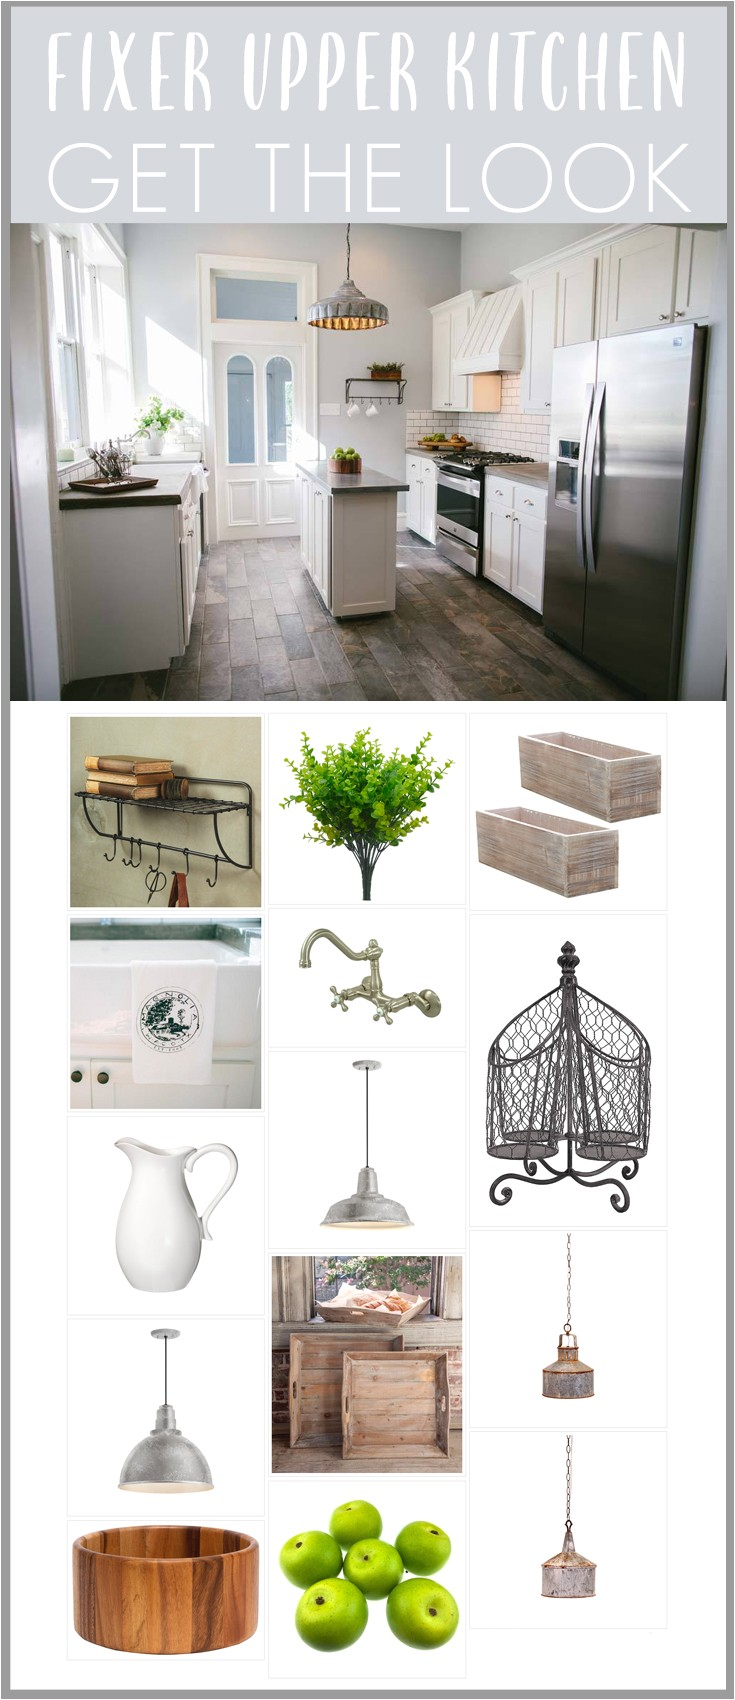 did you like this recreation of the fixer upper season 1 episode 12 kitchen pin it for later